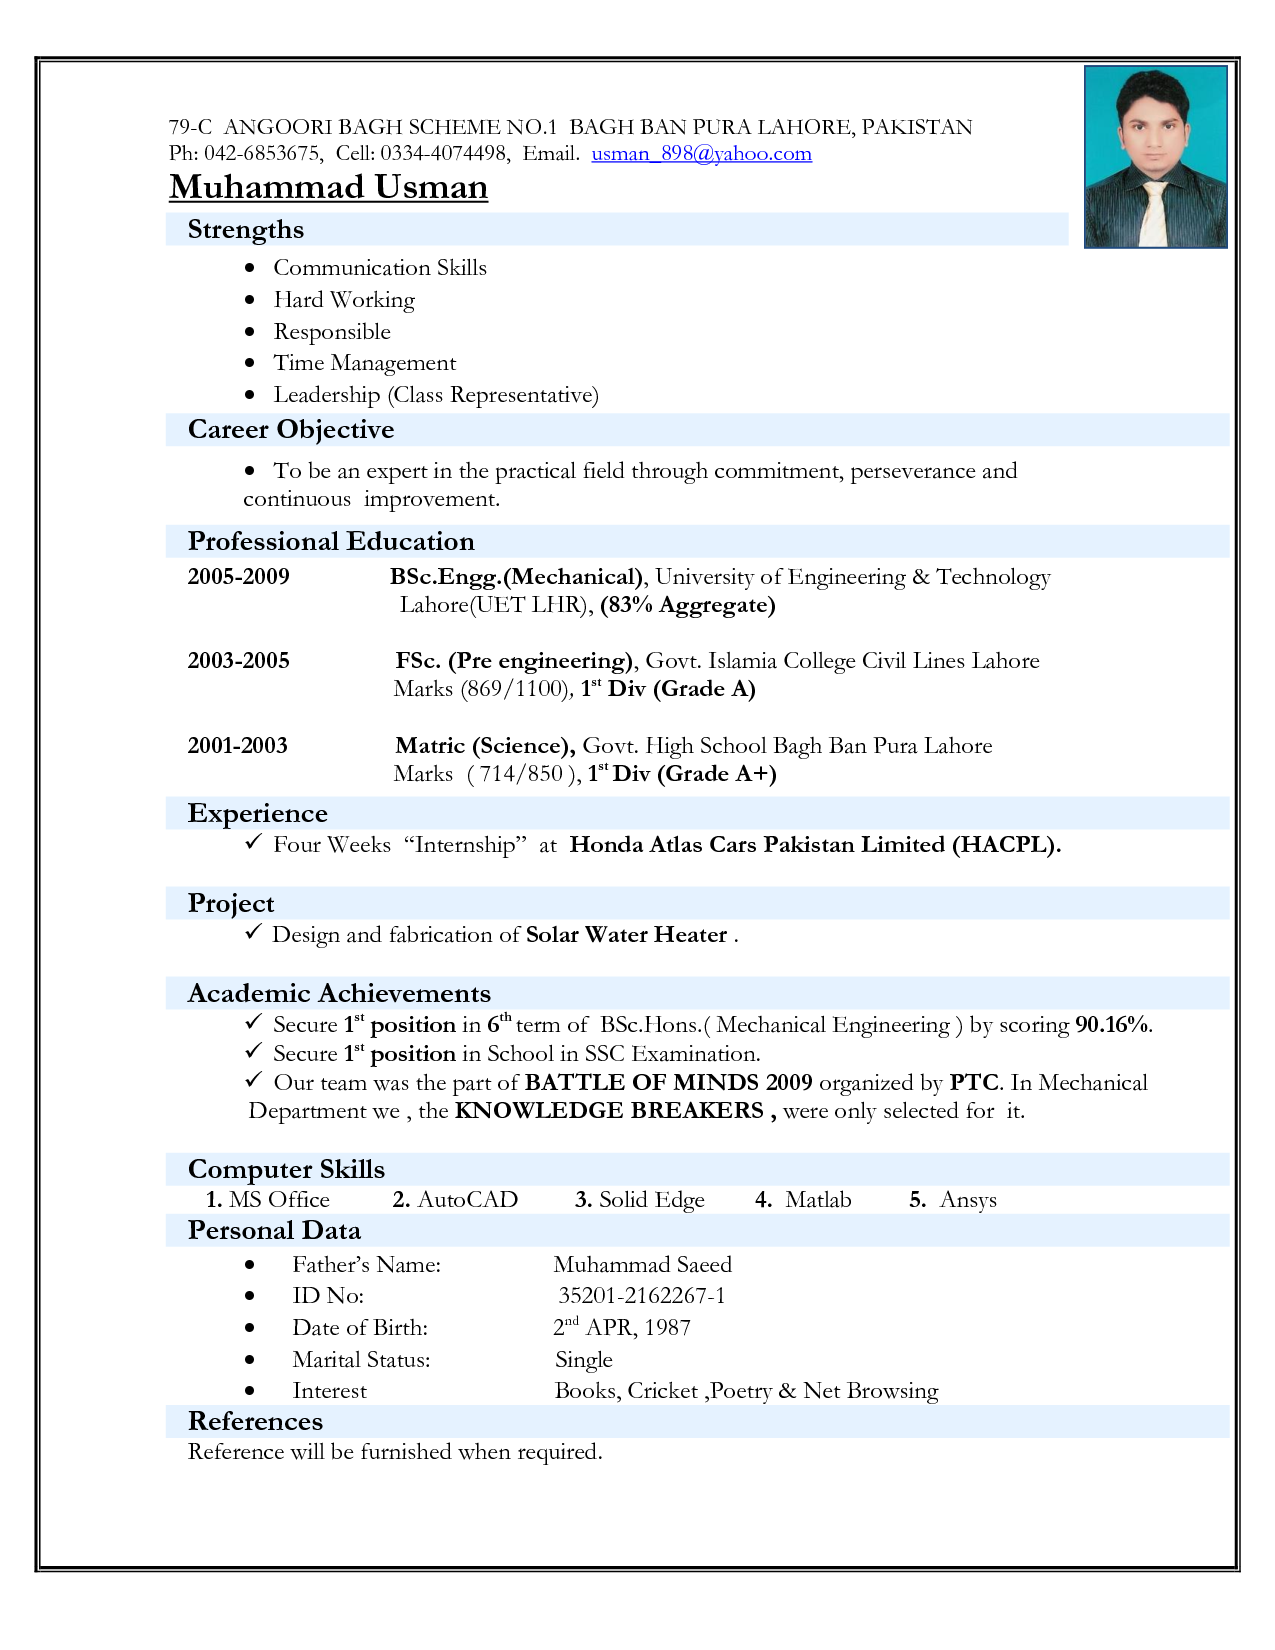 Resume Mechanical Engineeringcareer Resume Template Career Resume Template Resume Format Download Best Resume Format Job Resume Format